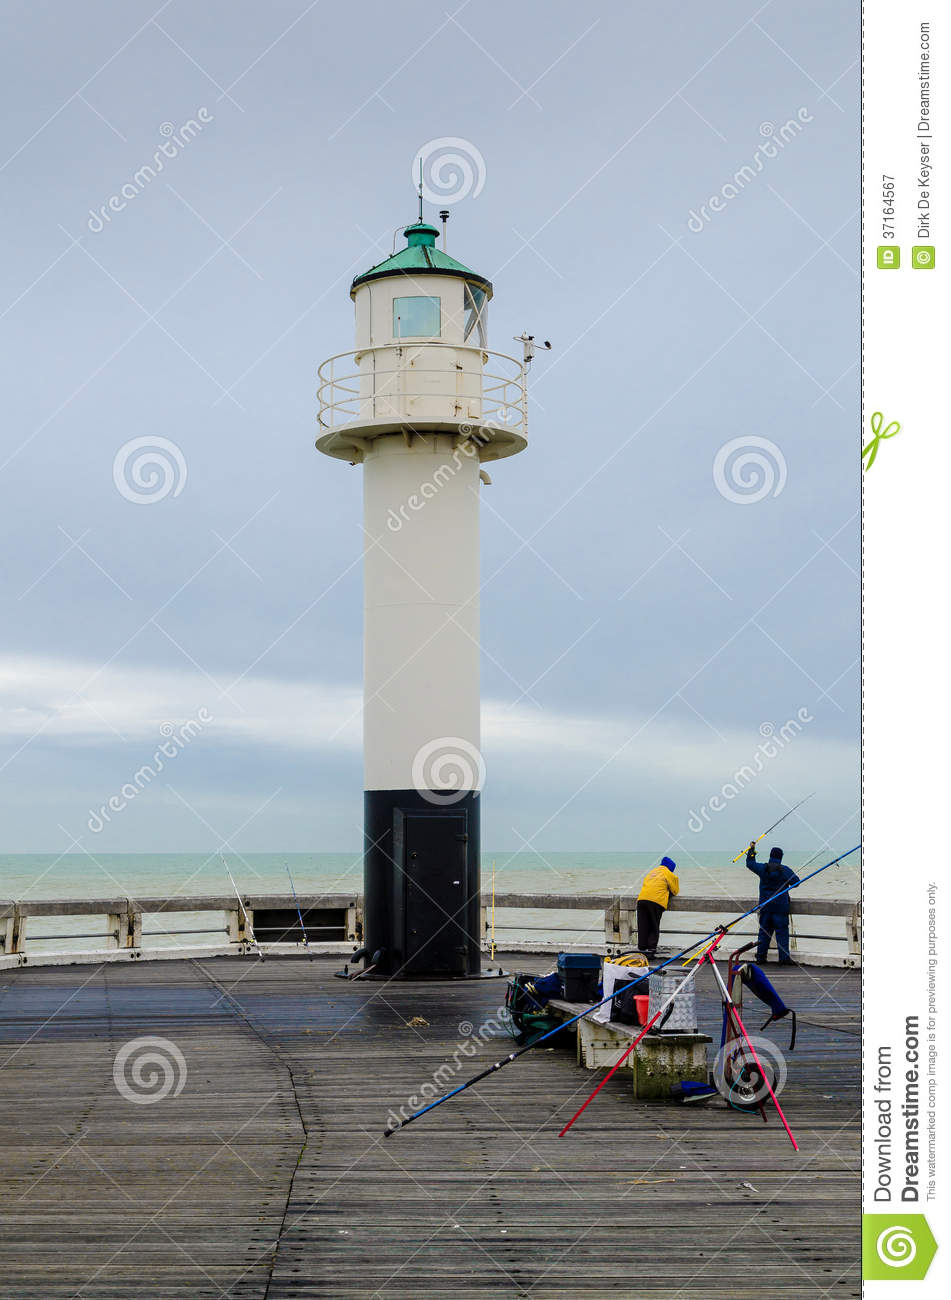 Fishing on the pier of Nieuwpoort, Belgium